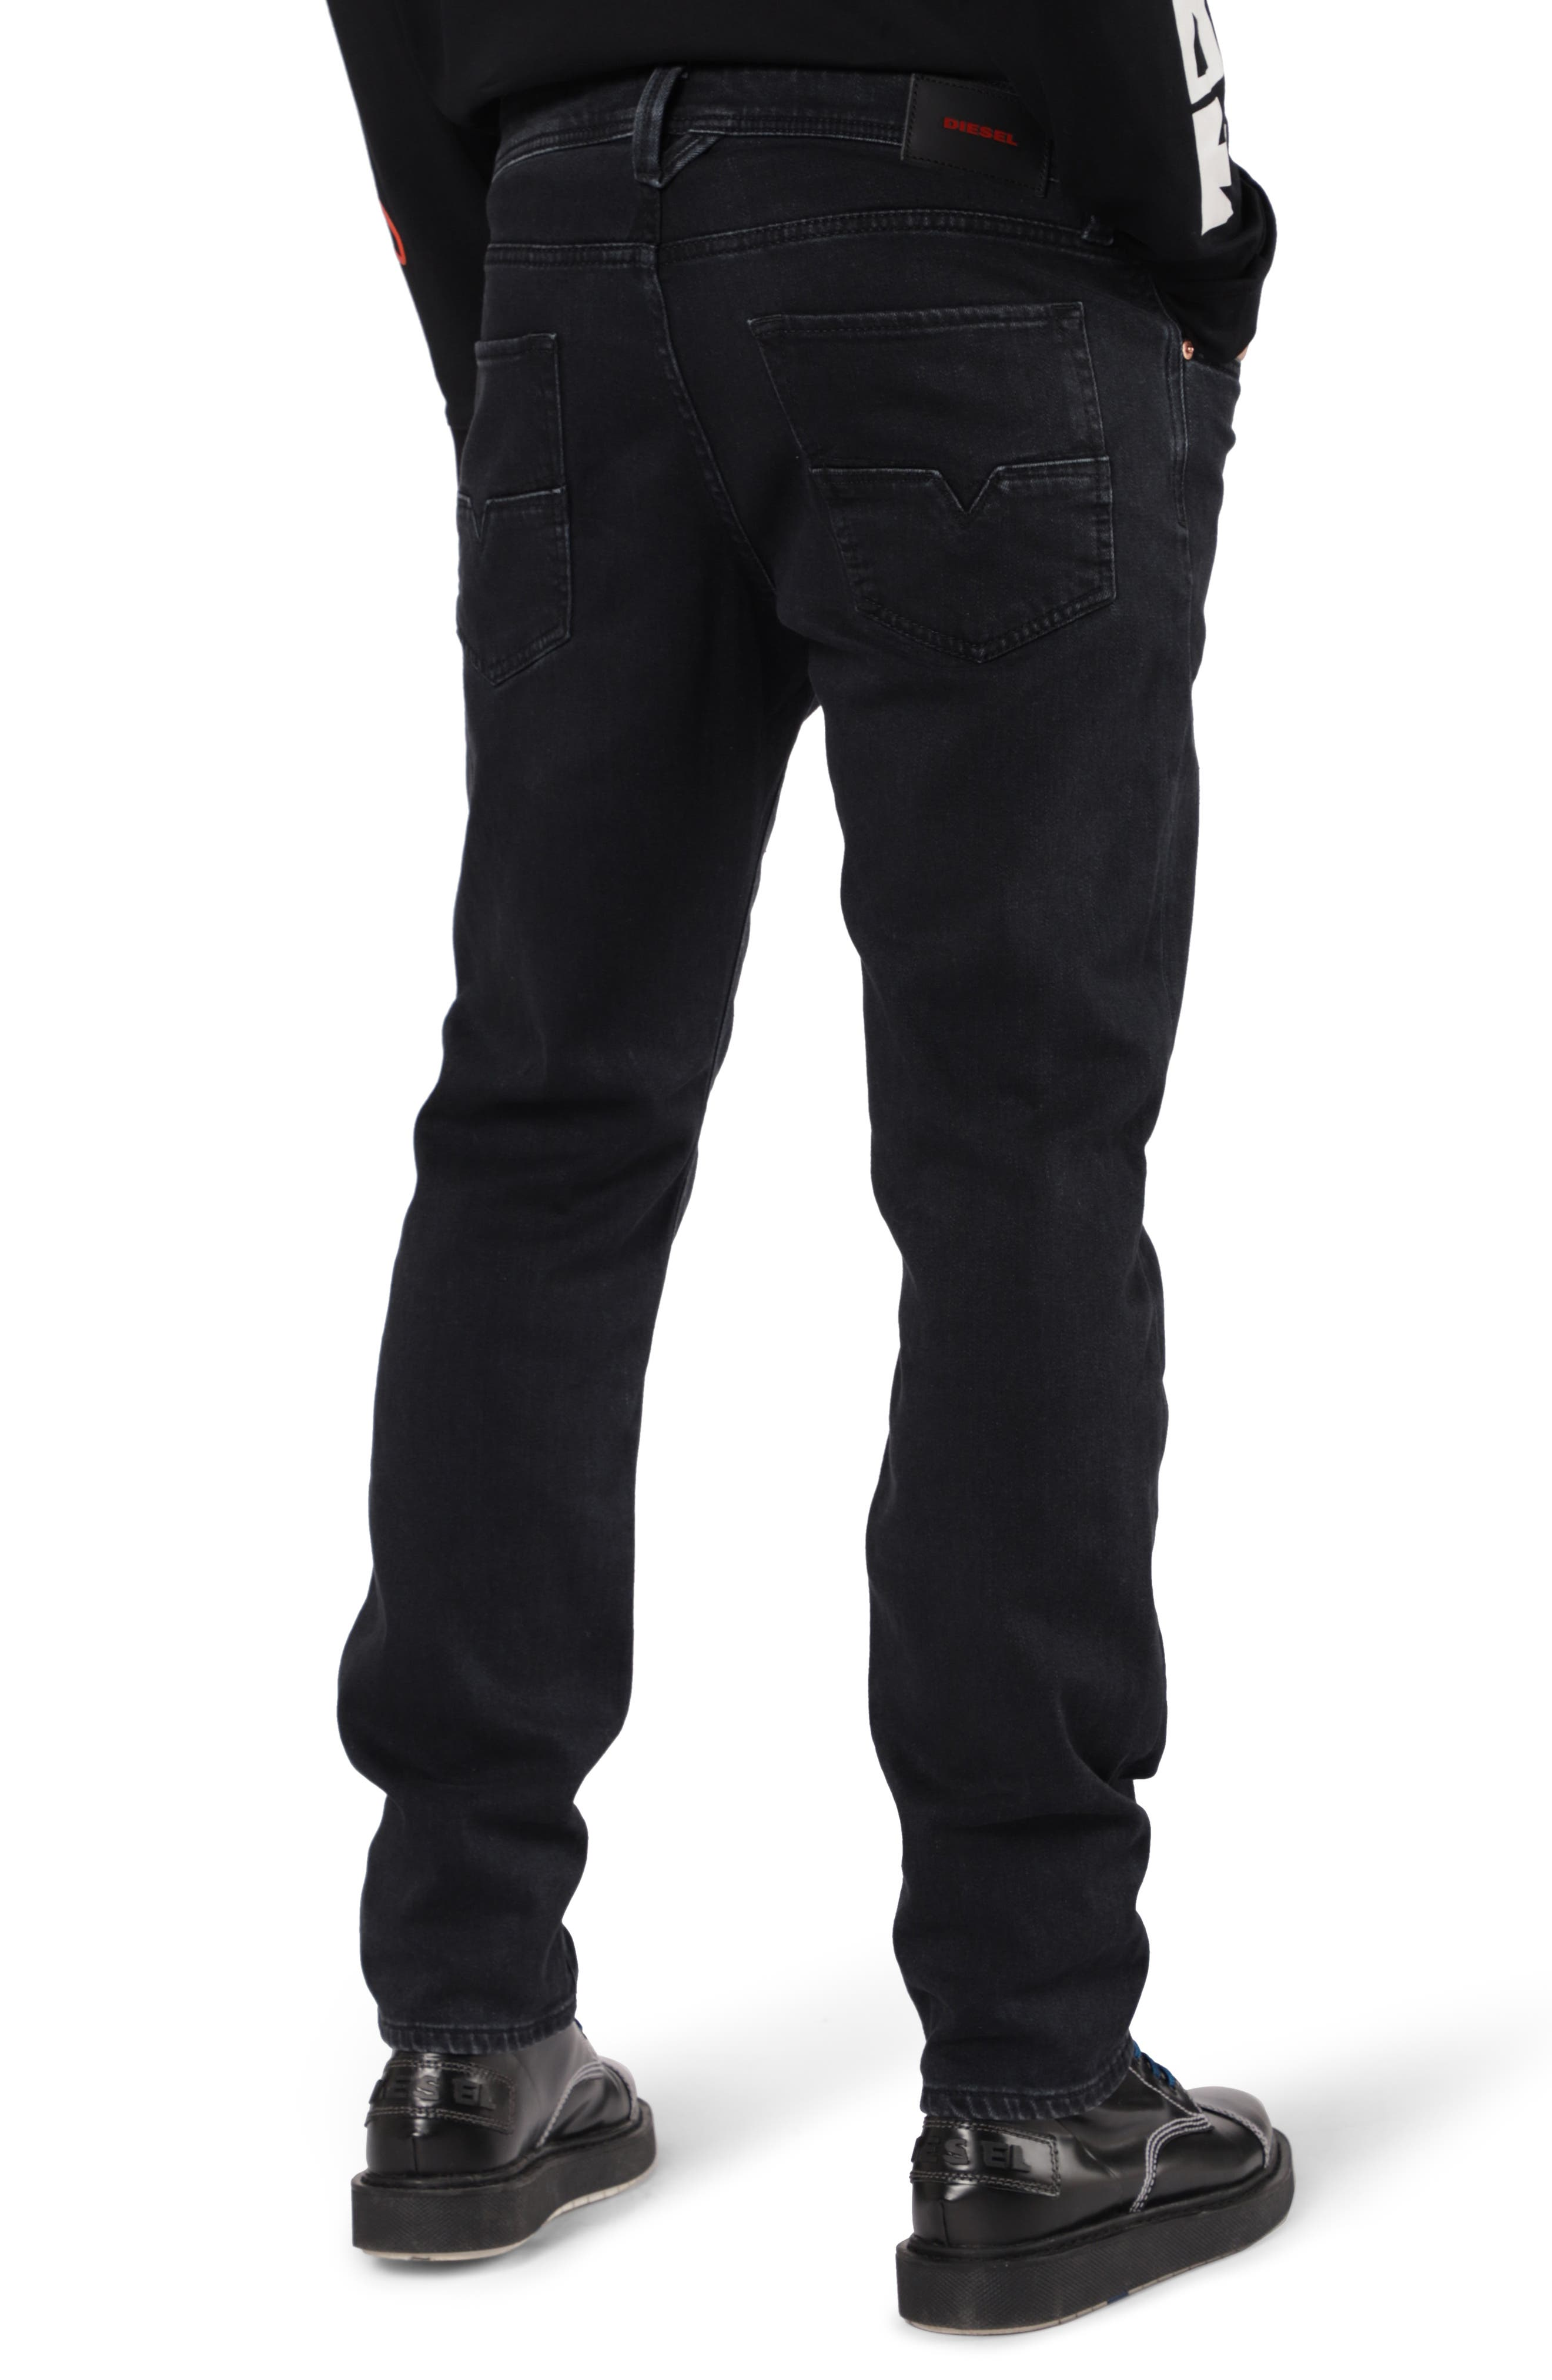 Larkee Relaxed Fit Jeans,                             Alternate thumbnail 2, color,                             084Nk